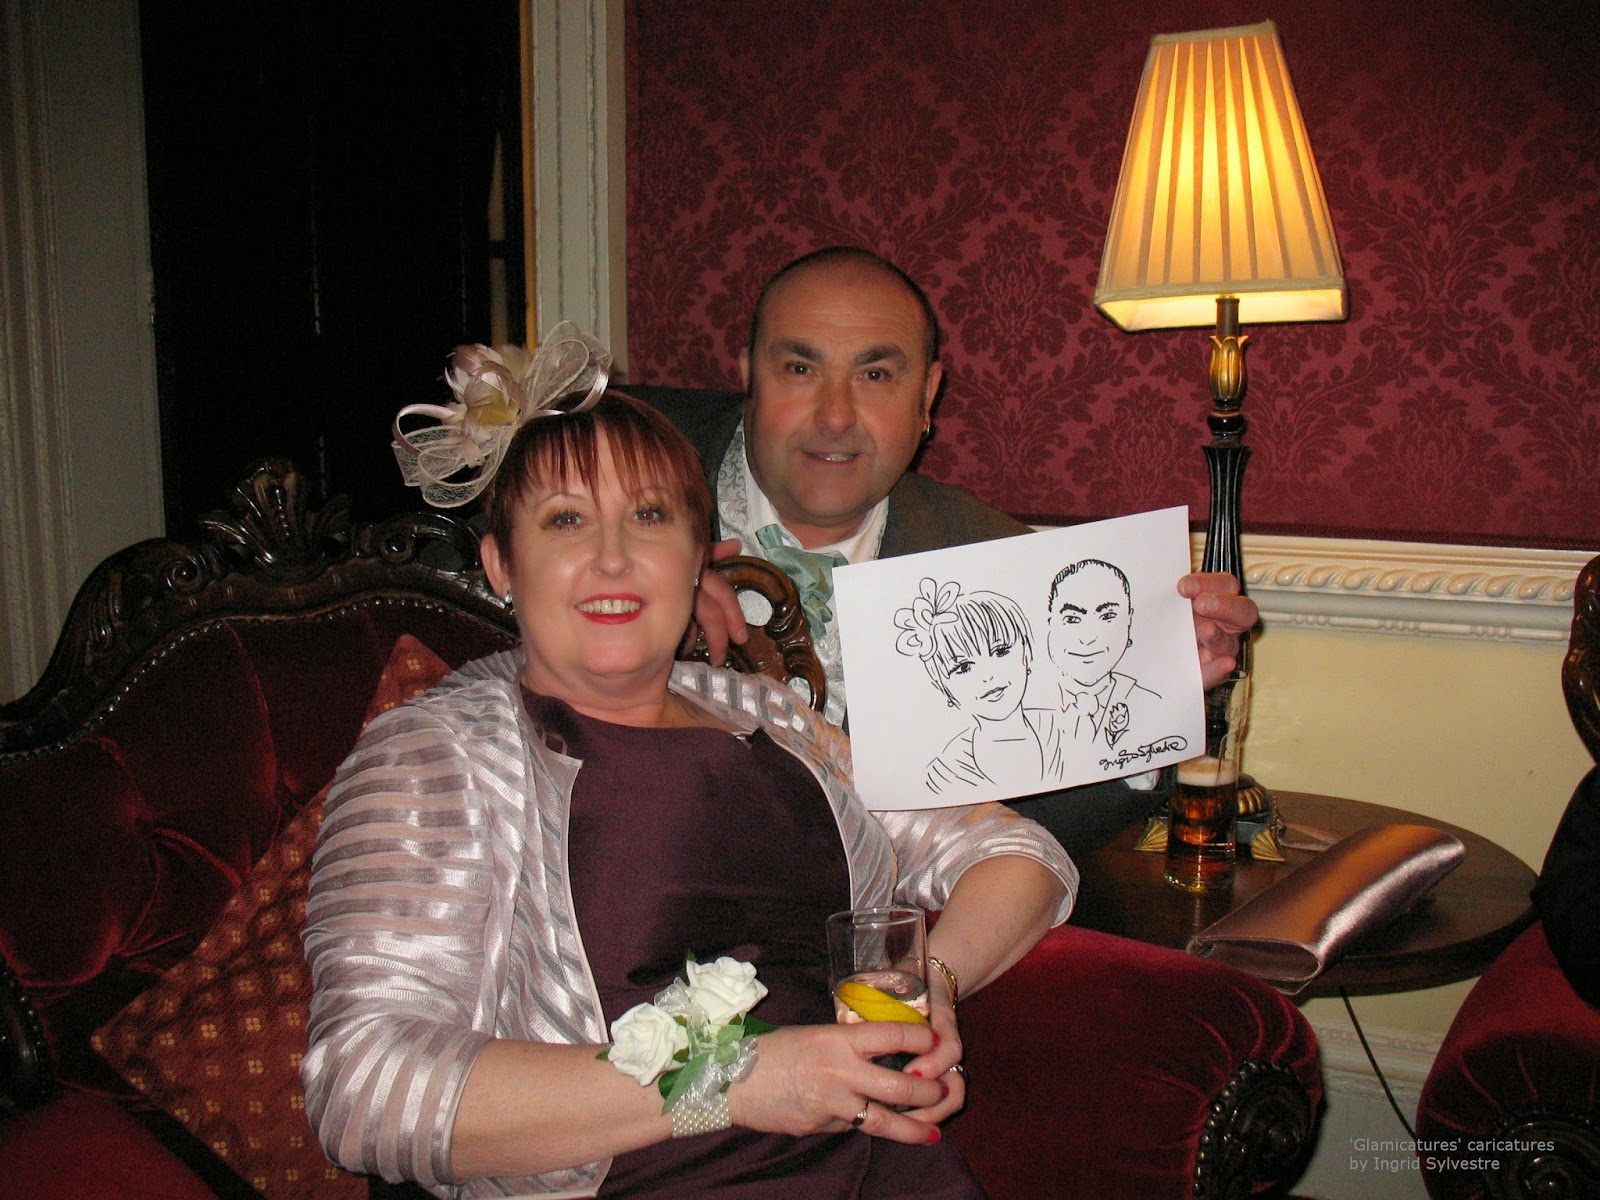 Glamicature wedding caricatures by UK caricaturist Ingrid Sylvestre at the wedding of Hannah and David at Lumley Castle County Durham